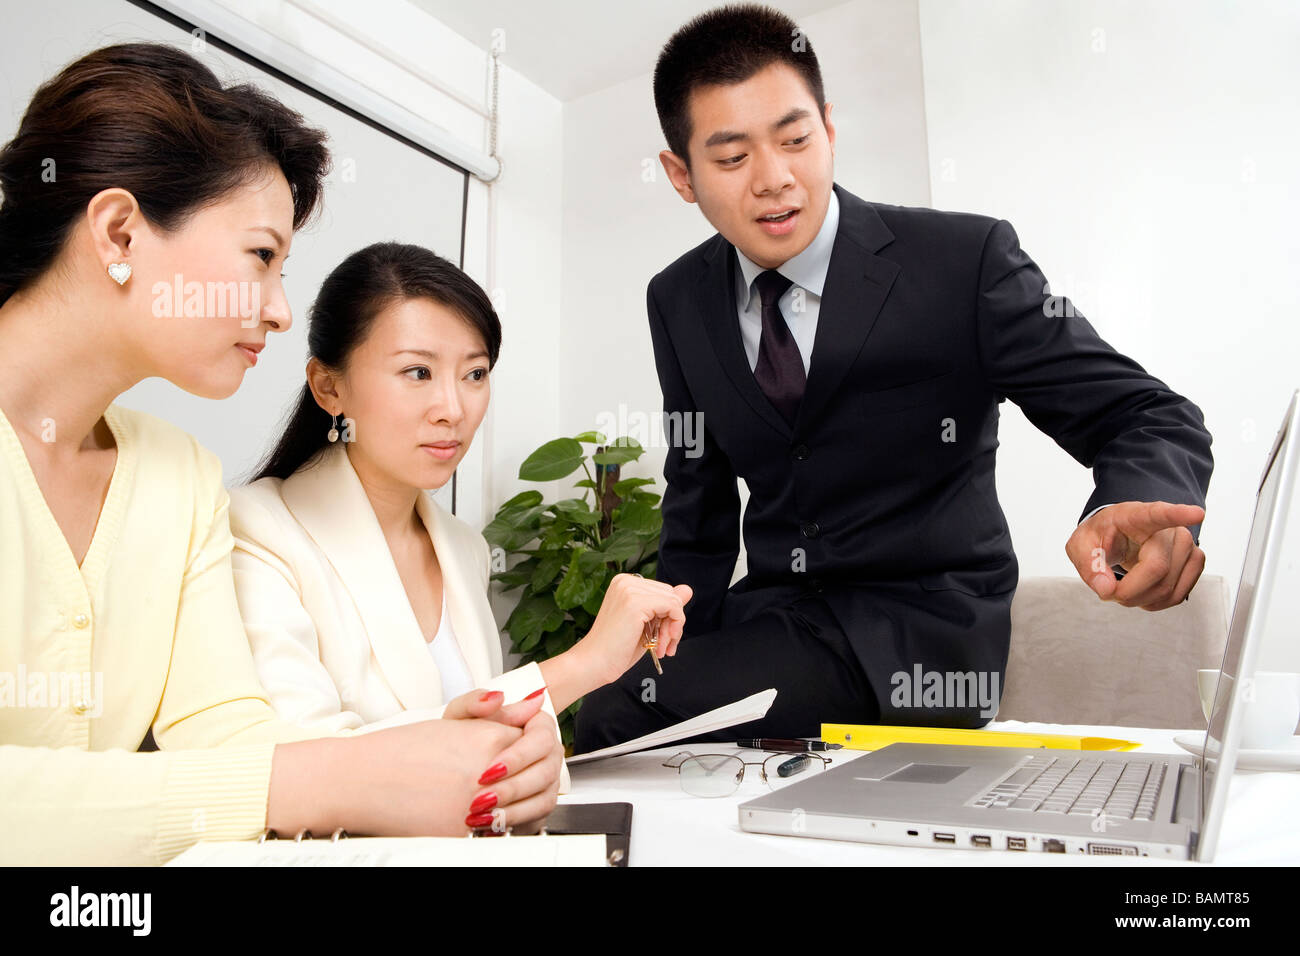 Businesspeople In Meeting - Stock Image